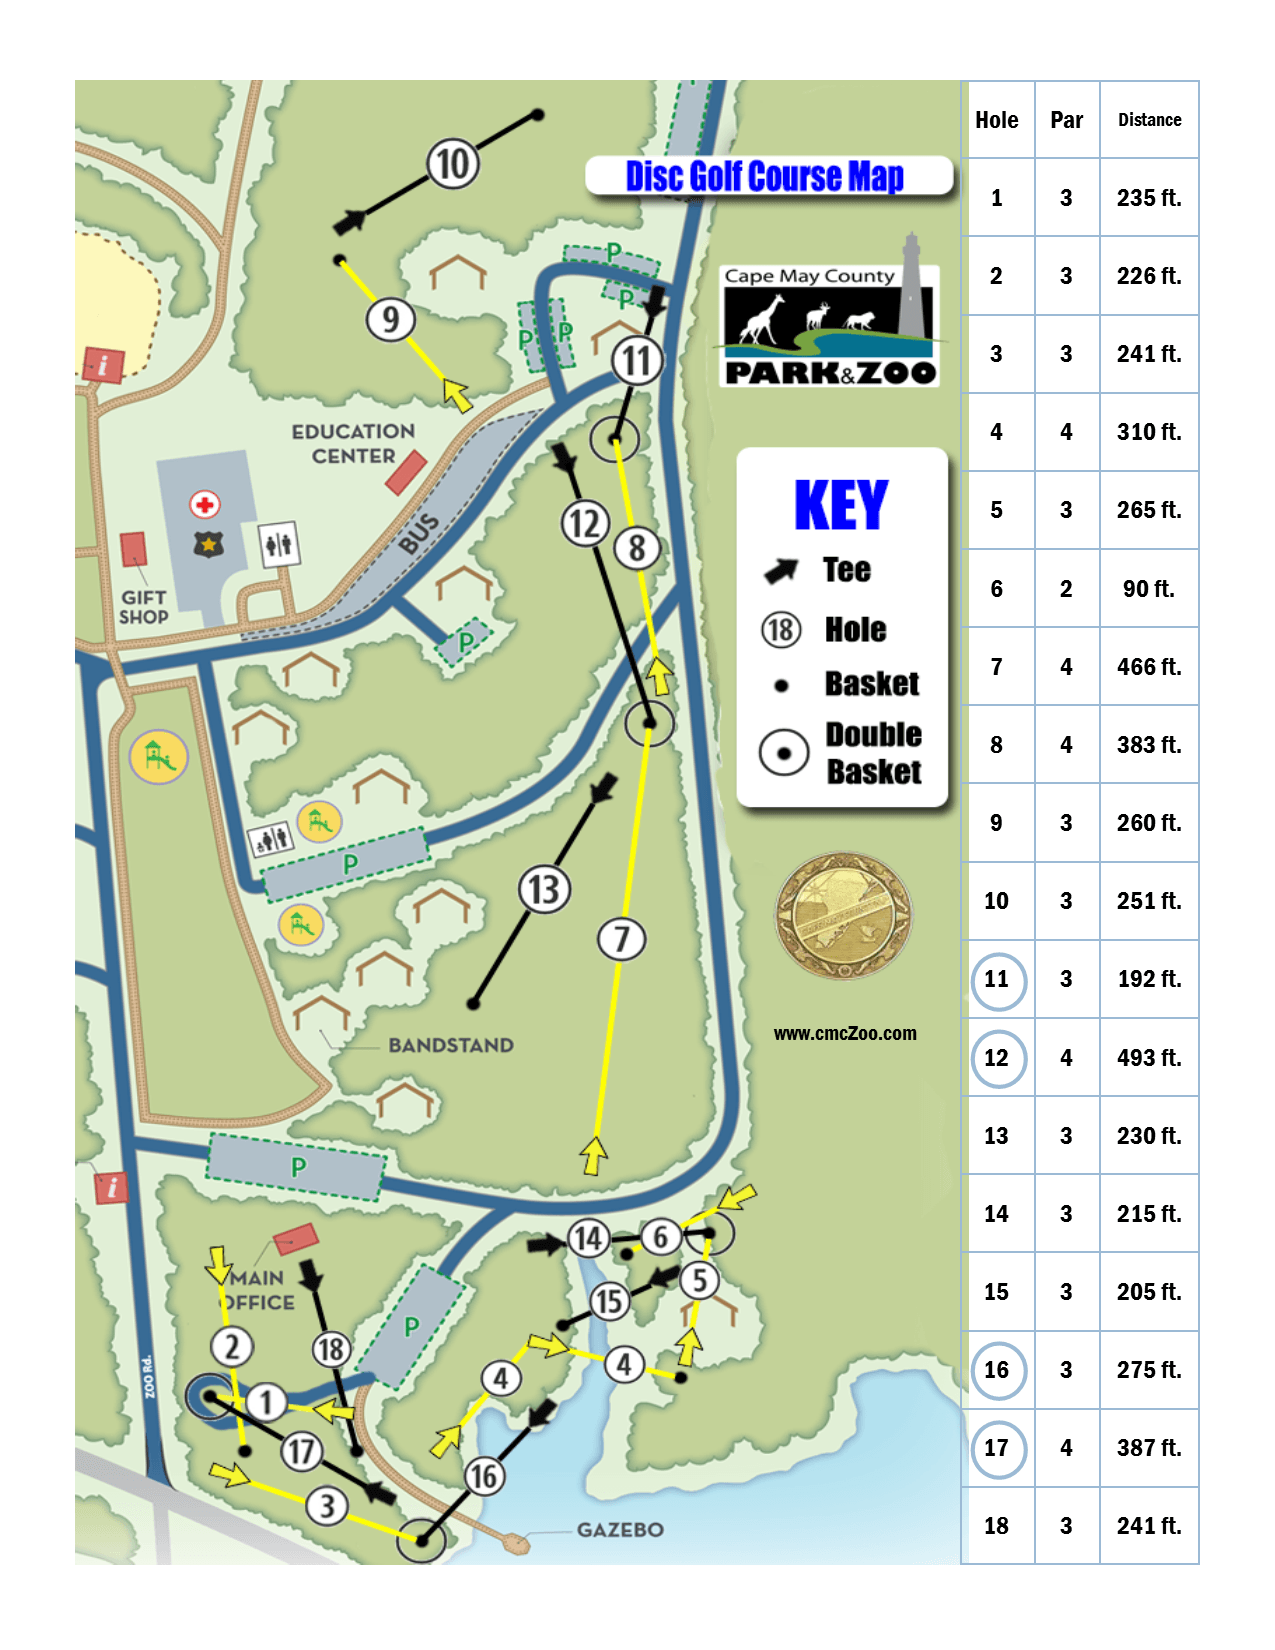 Disc Golf Course Map 2019